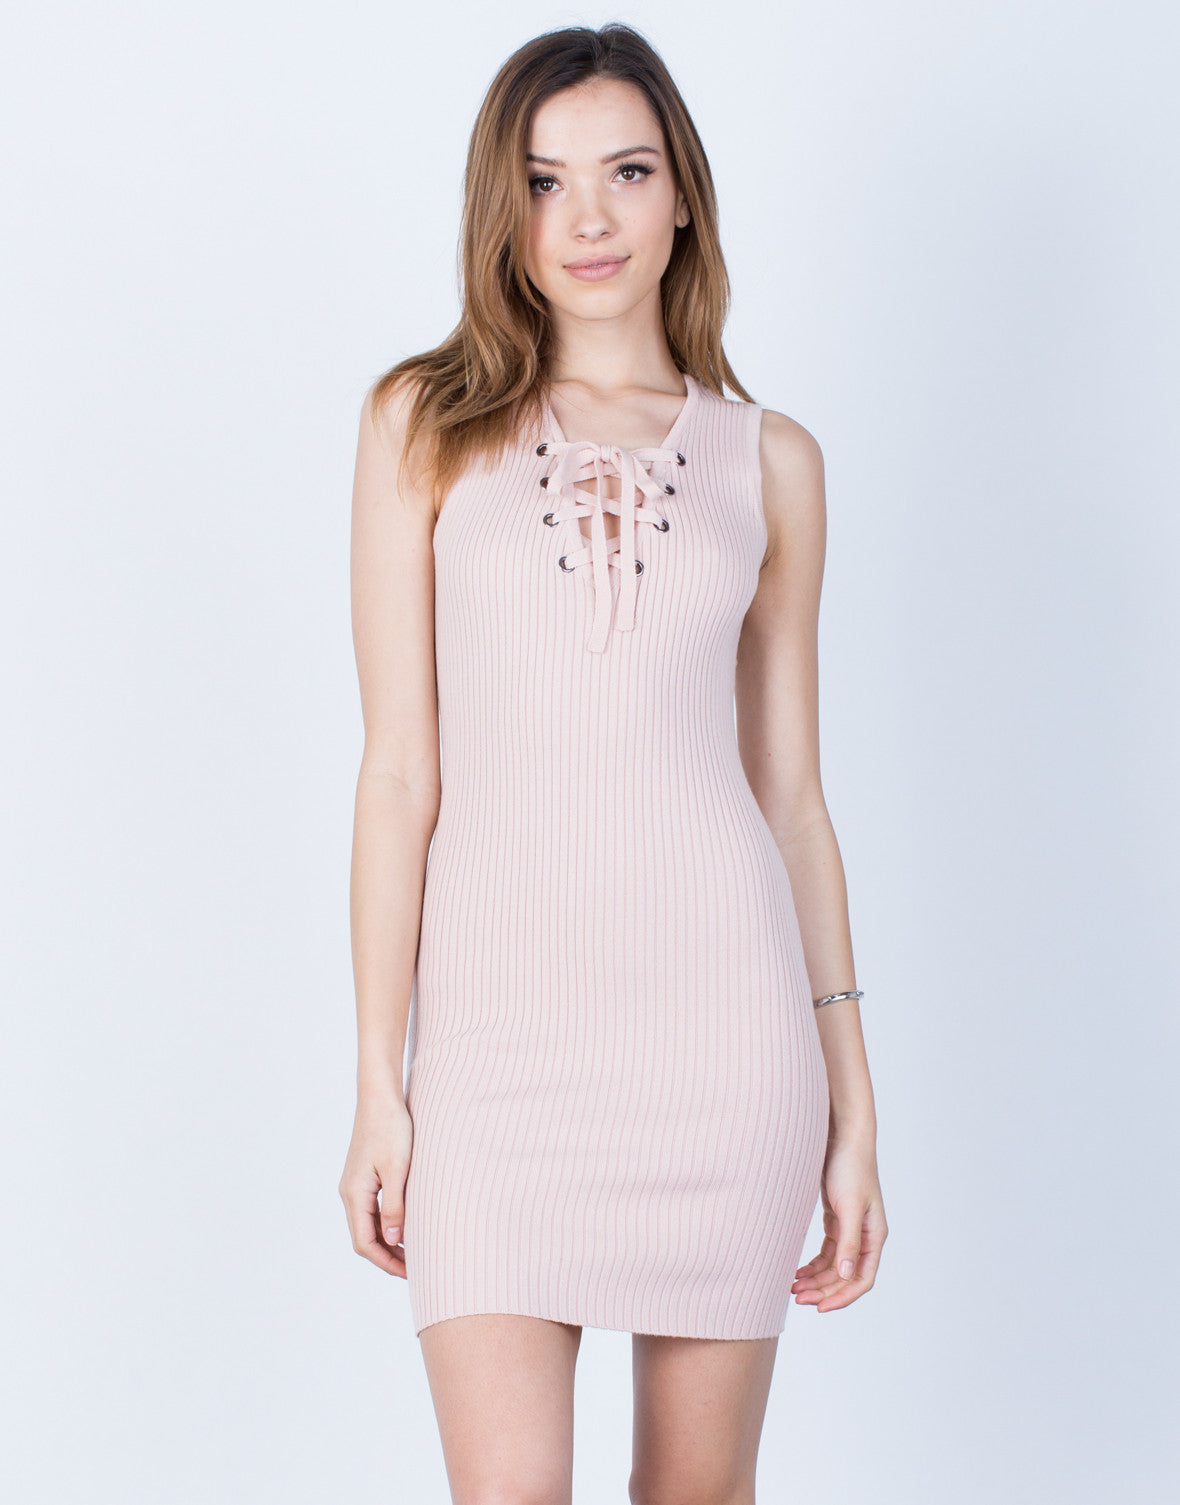 Ribbed Knit Lace-Up Dress - Lace Up Party Dress - Ribbed Bodycon ... 3be2a1496